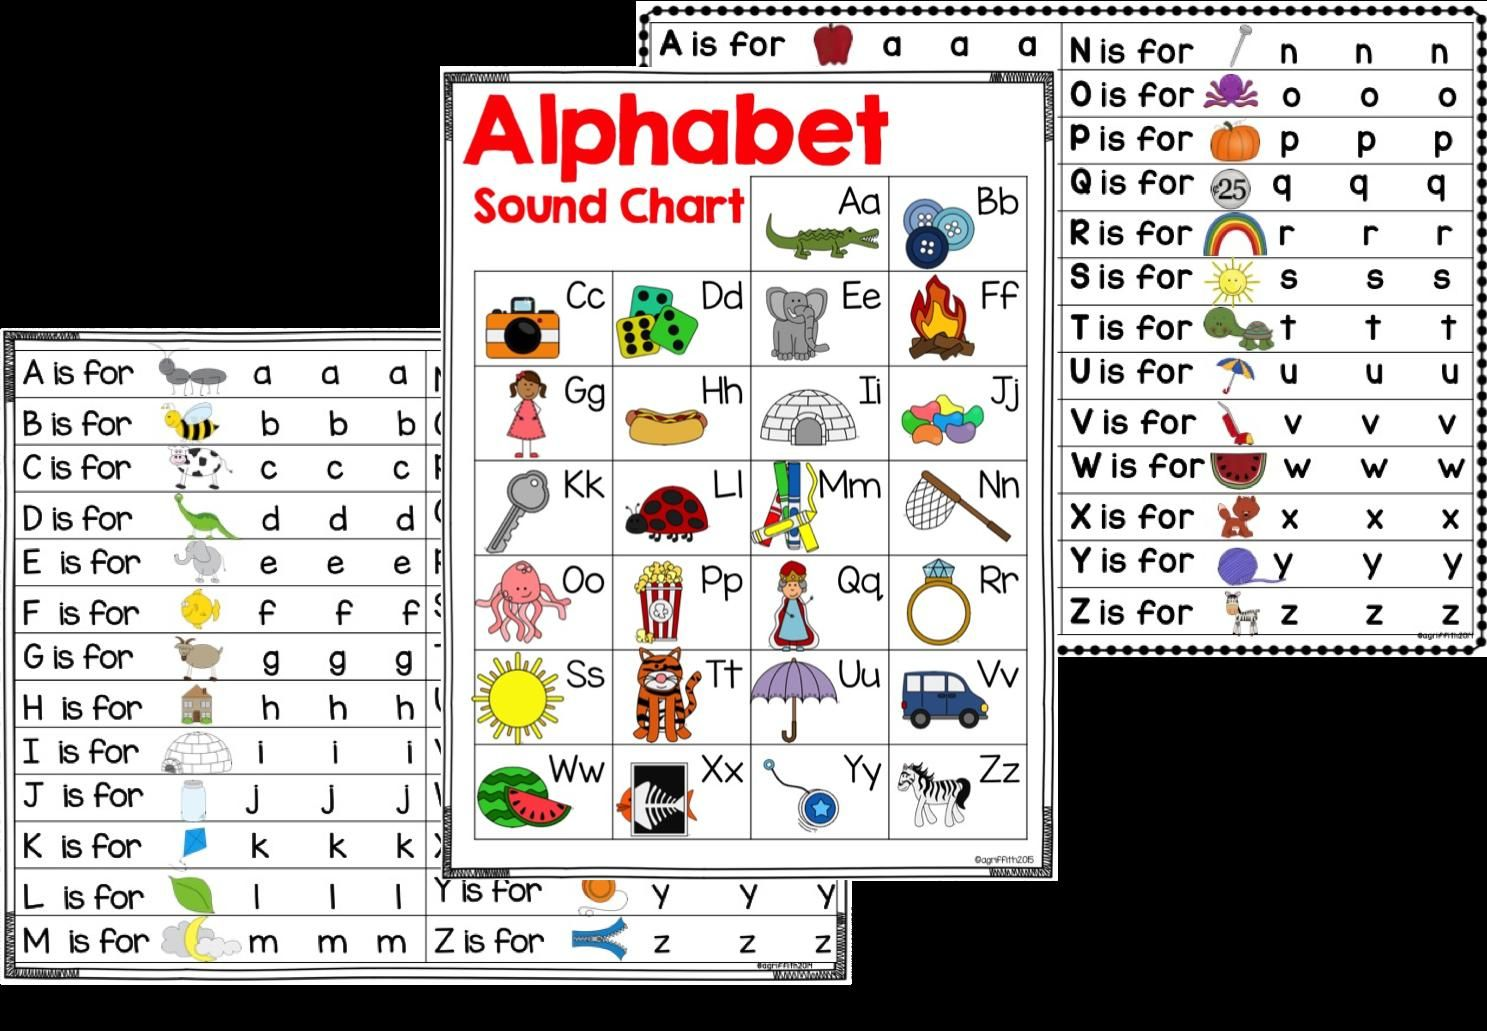 Phonic Sounds Of Alphabets A To Z In Hindi Abc Phonics Phonics Chart Phonics Sounds [ 1031 x 1487 Pixel ]